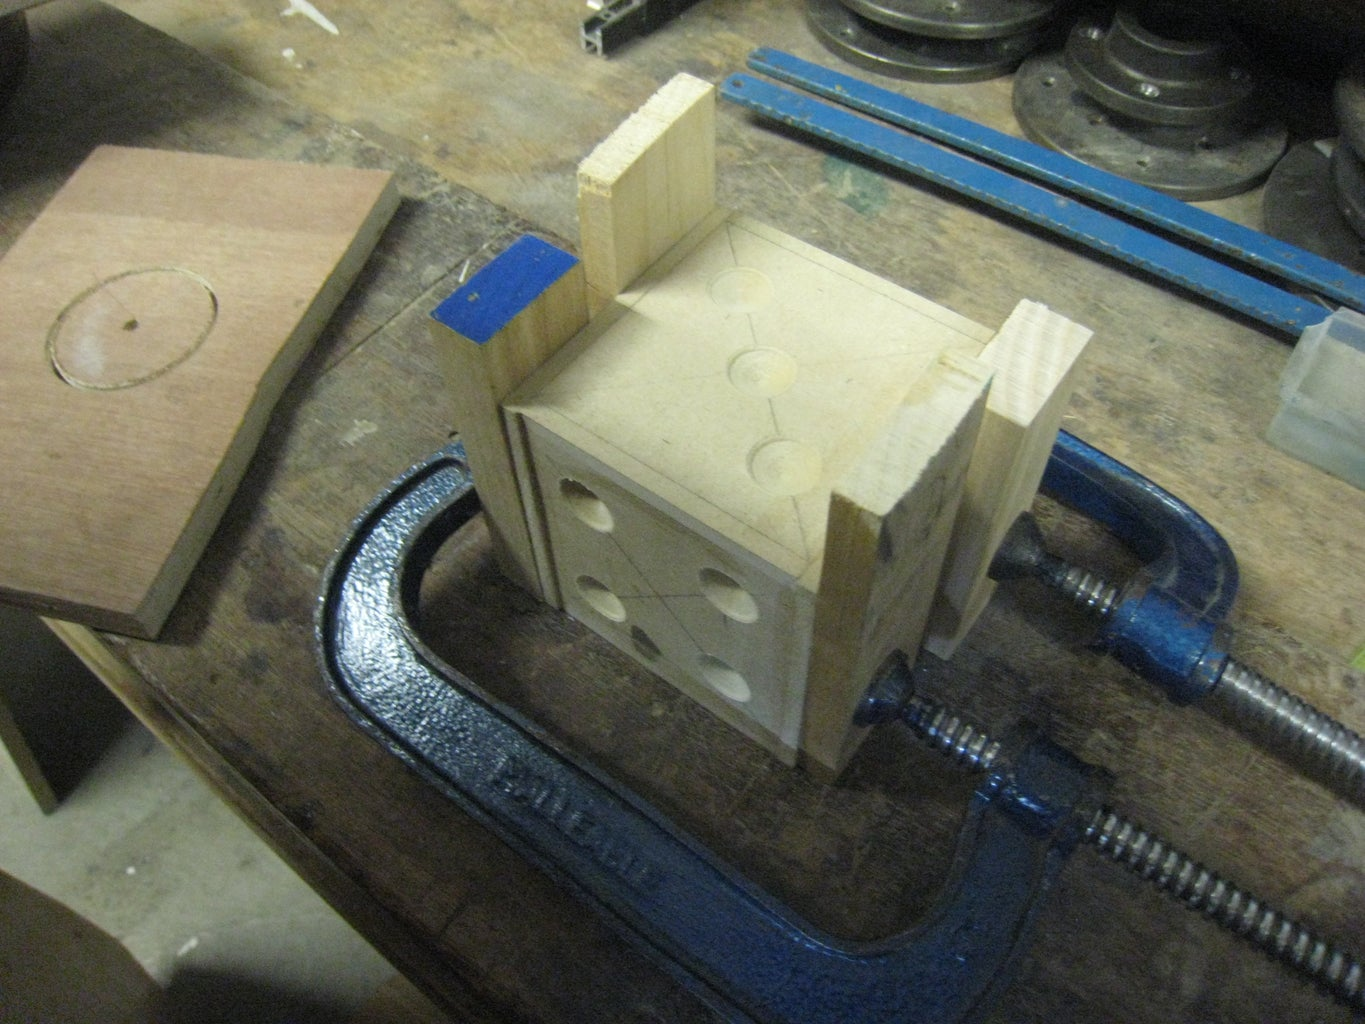 Gluing Some Parts Together